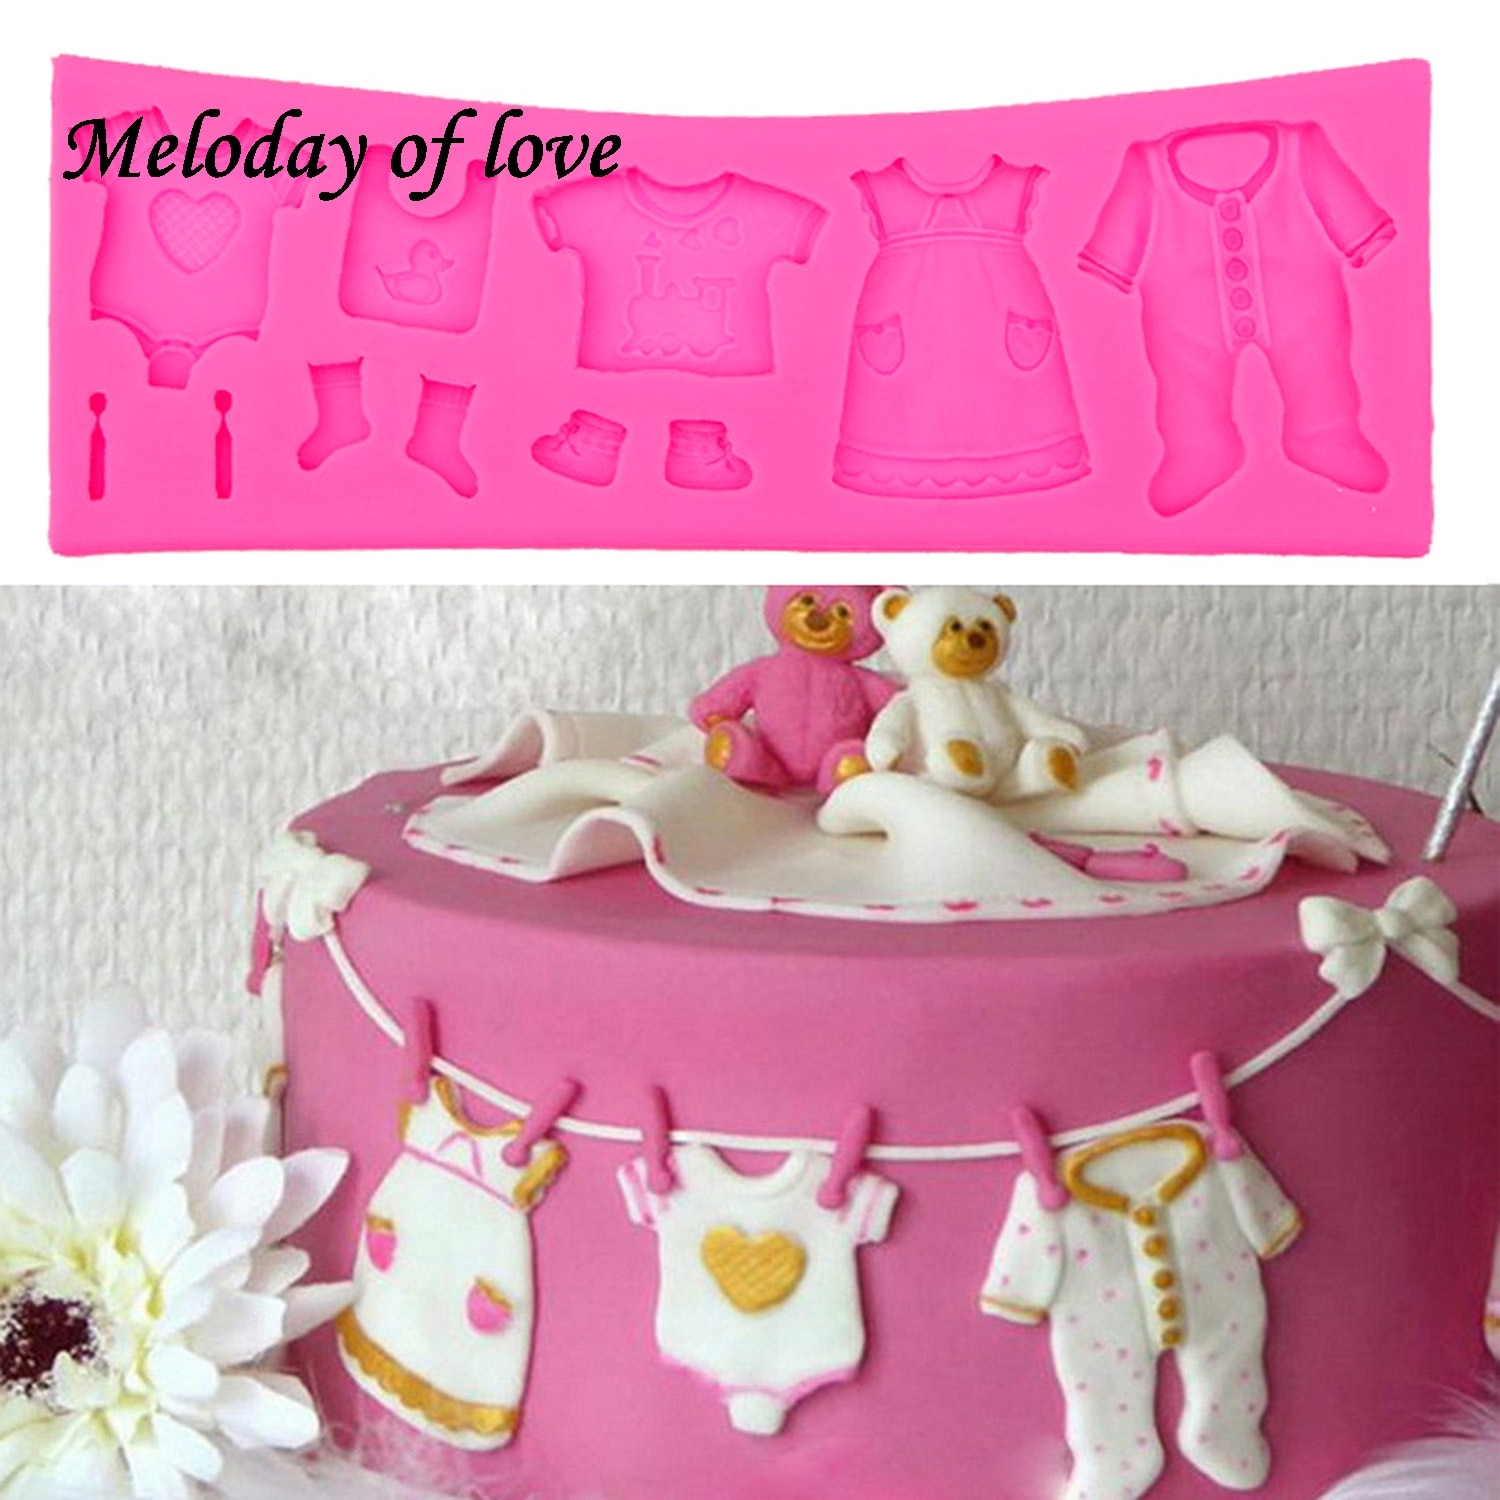 AliExpress - Hot Selling Pop 3D Baby Clothes Shower DIY Silicone Mould Fondant Kitchen Cake Decorating Mold for Chocolate Baking Tools T0534